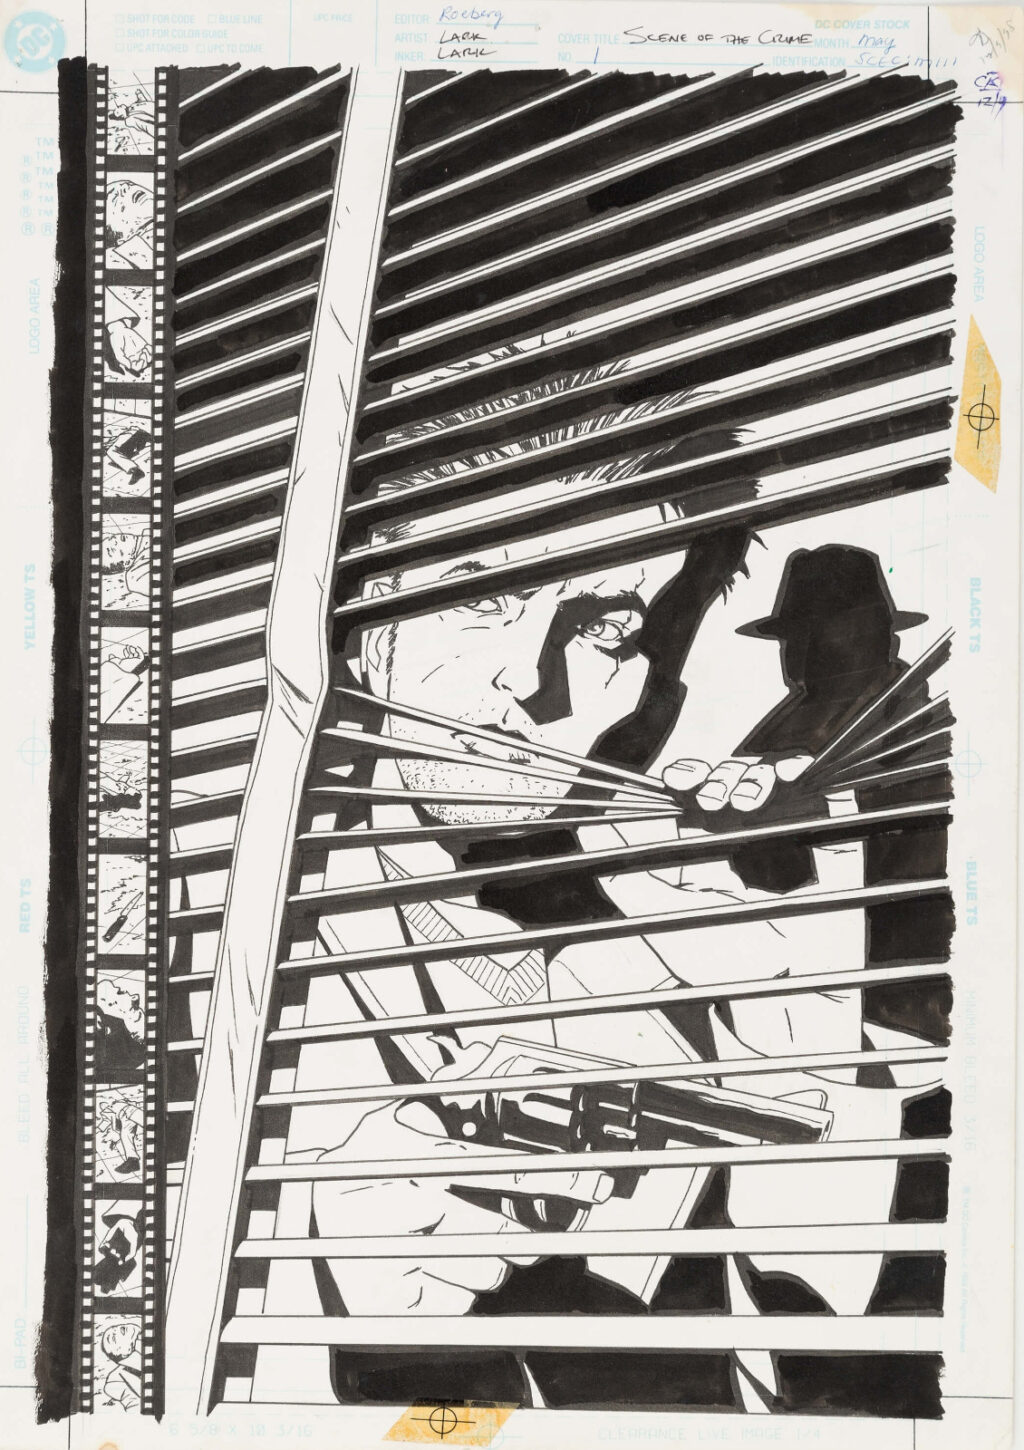 Scene of the Crime issue 1 cover by Michael Lark